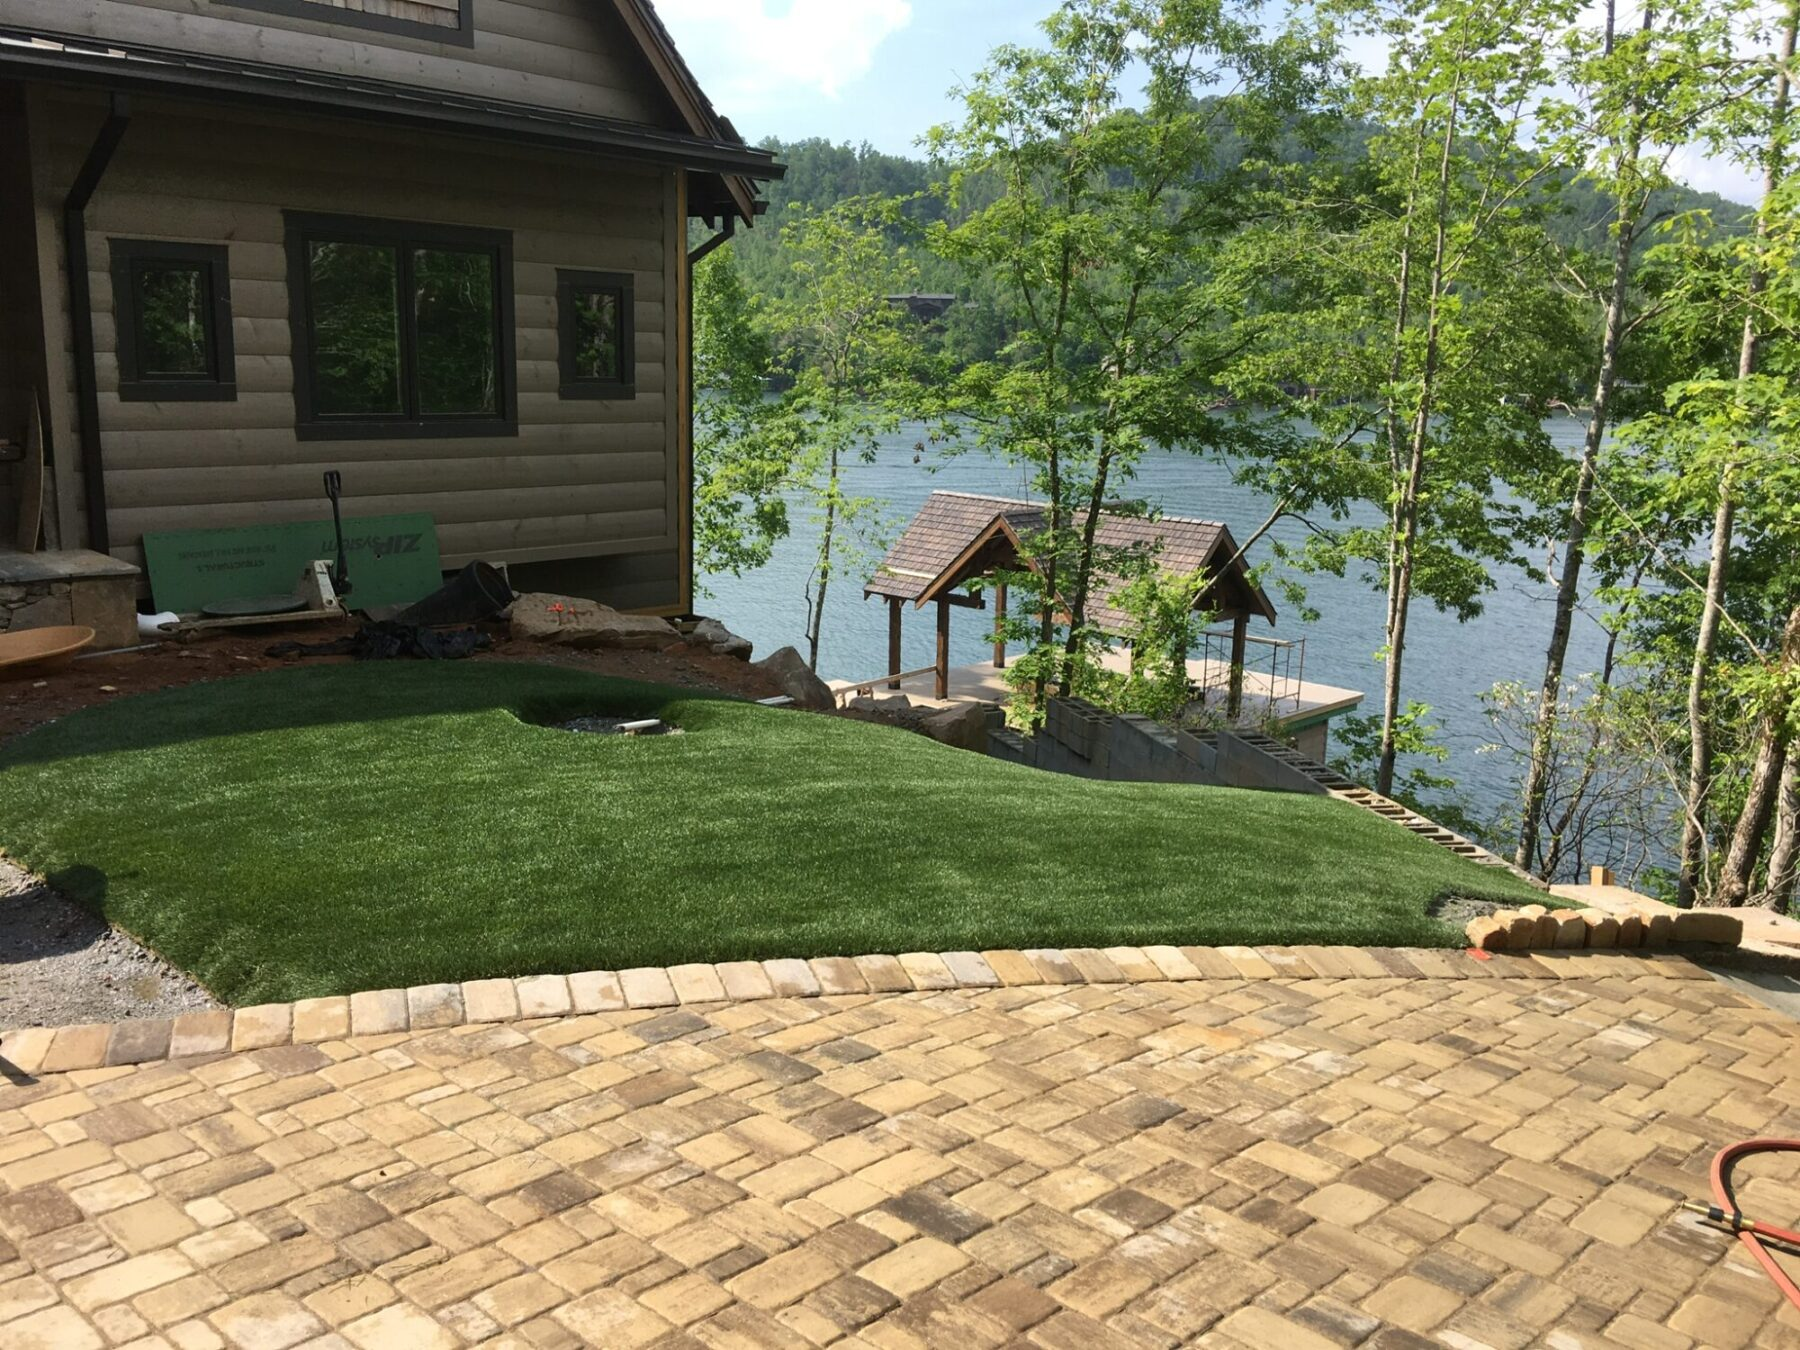 affordable residential home with artificial grass